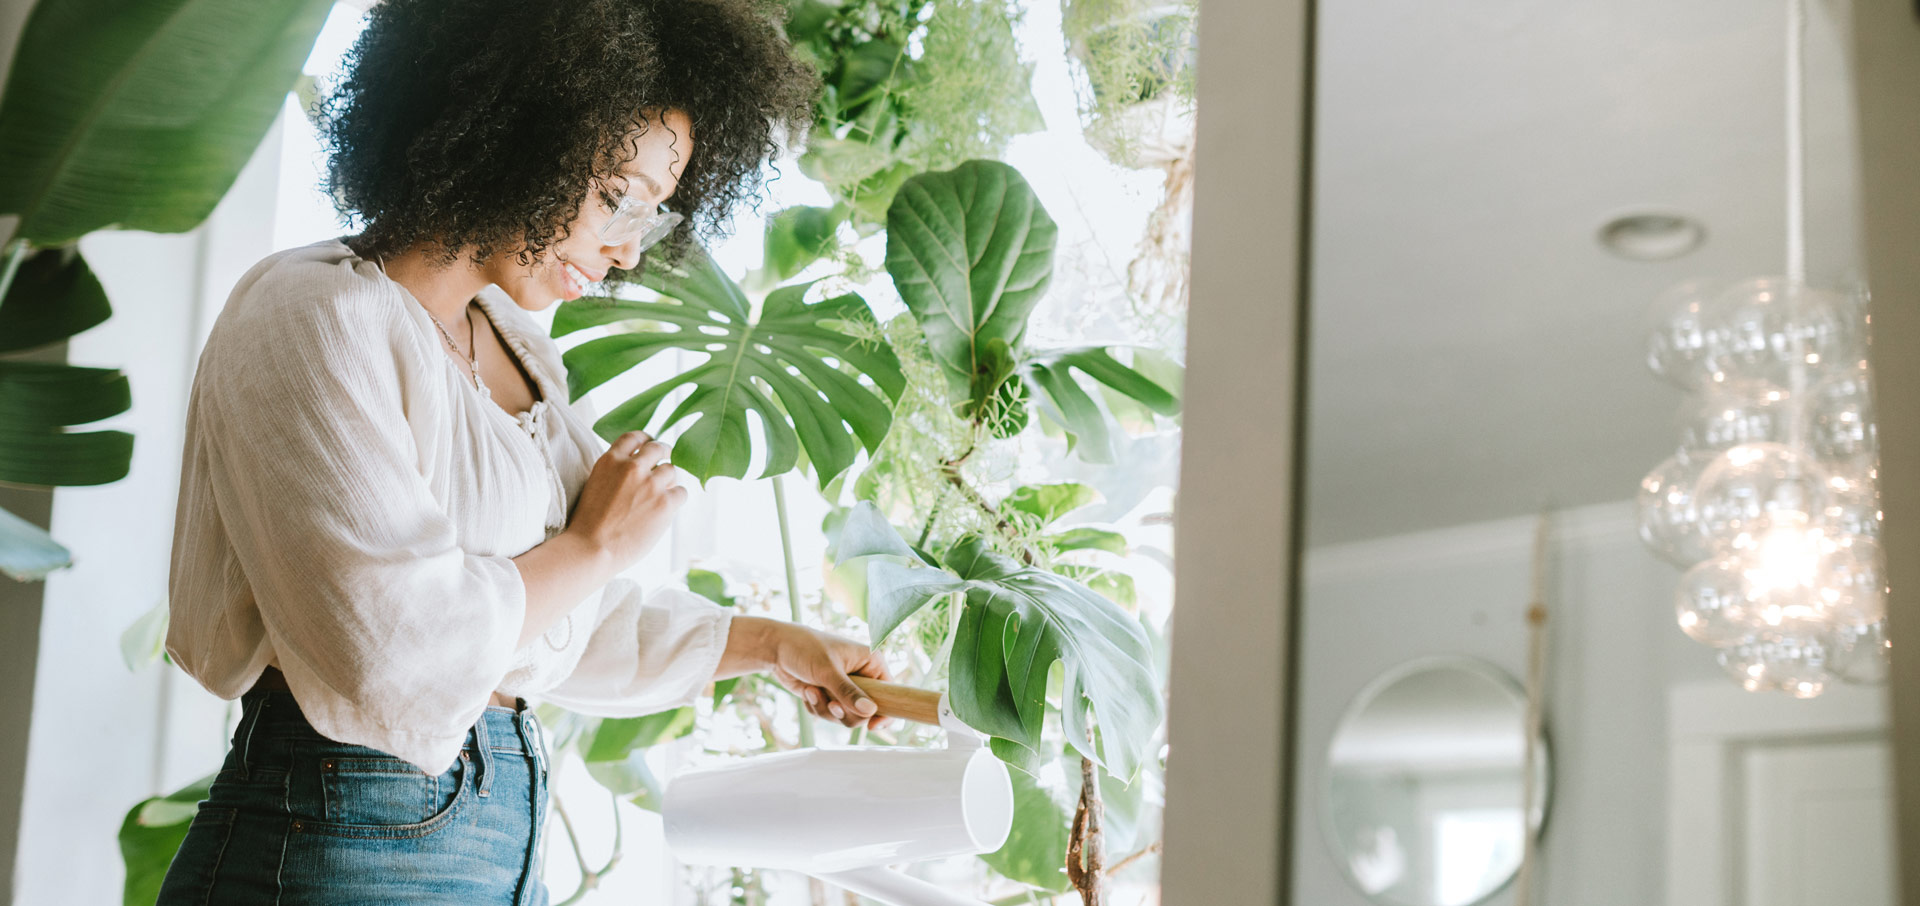 Woman watering collection of tropical plants